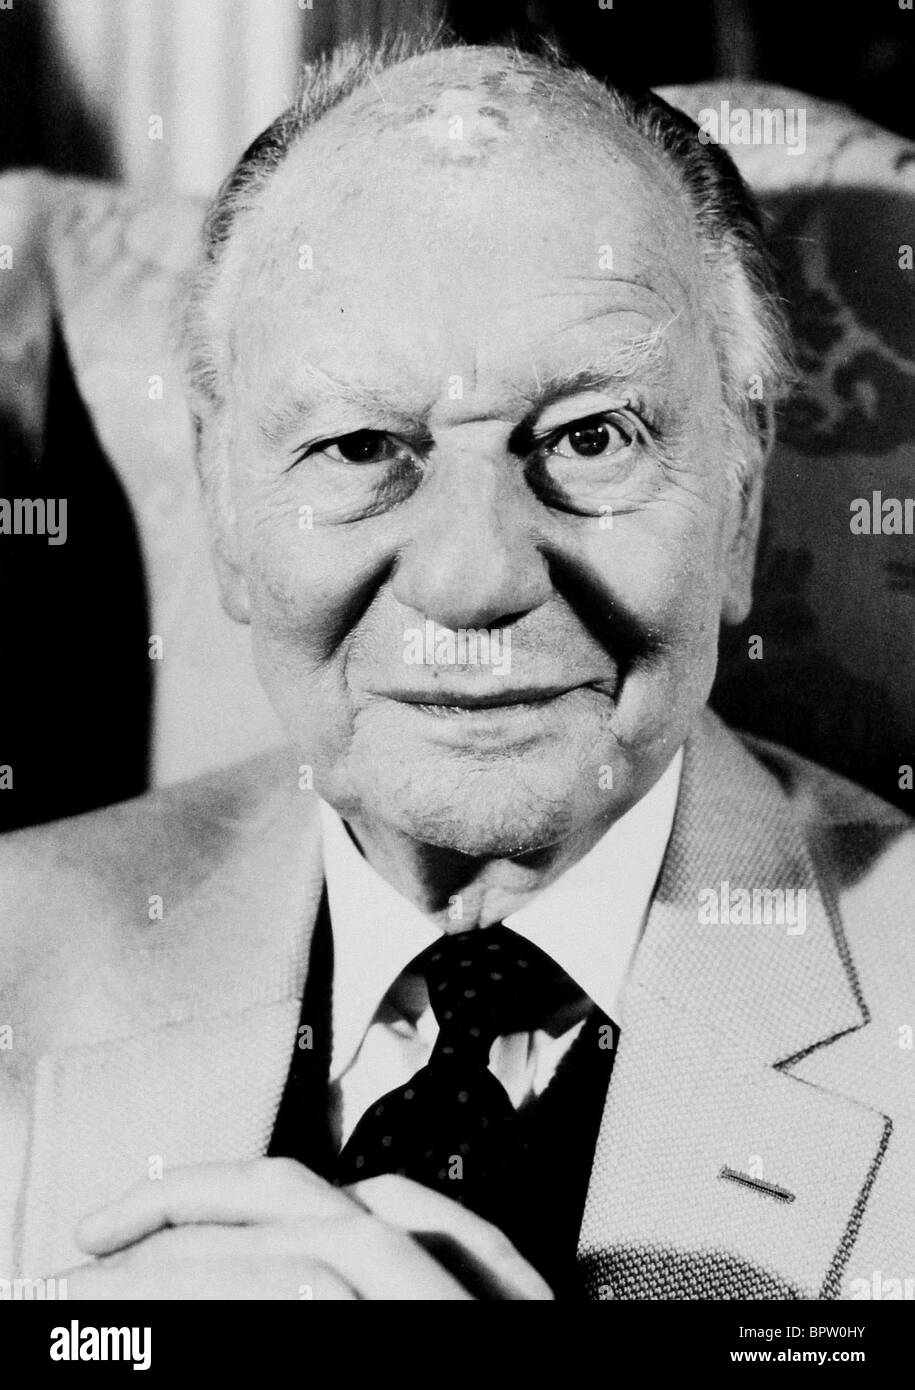 SIR JOHN GIELGUD ACTOR (1980) - Stock Image